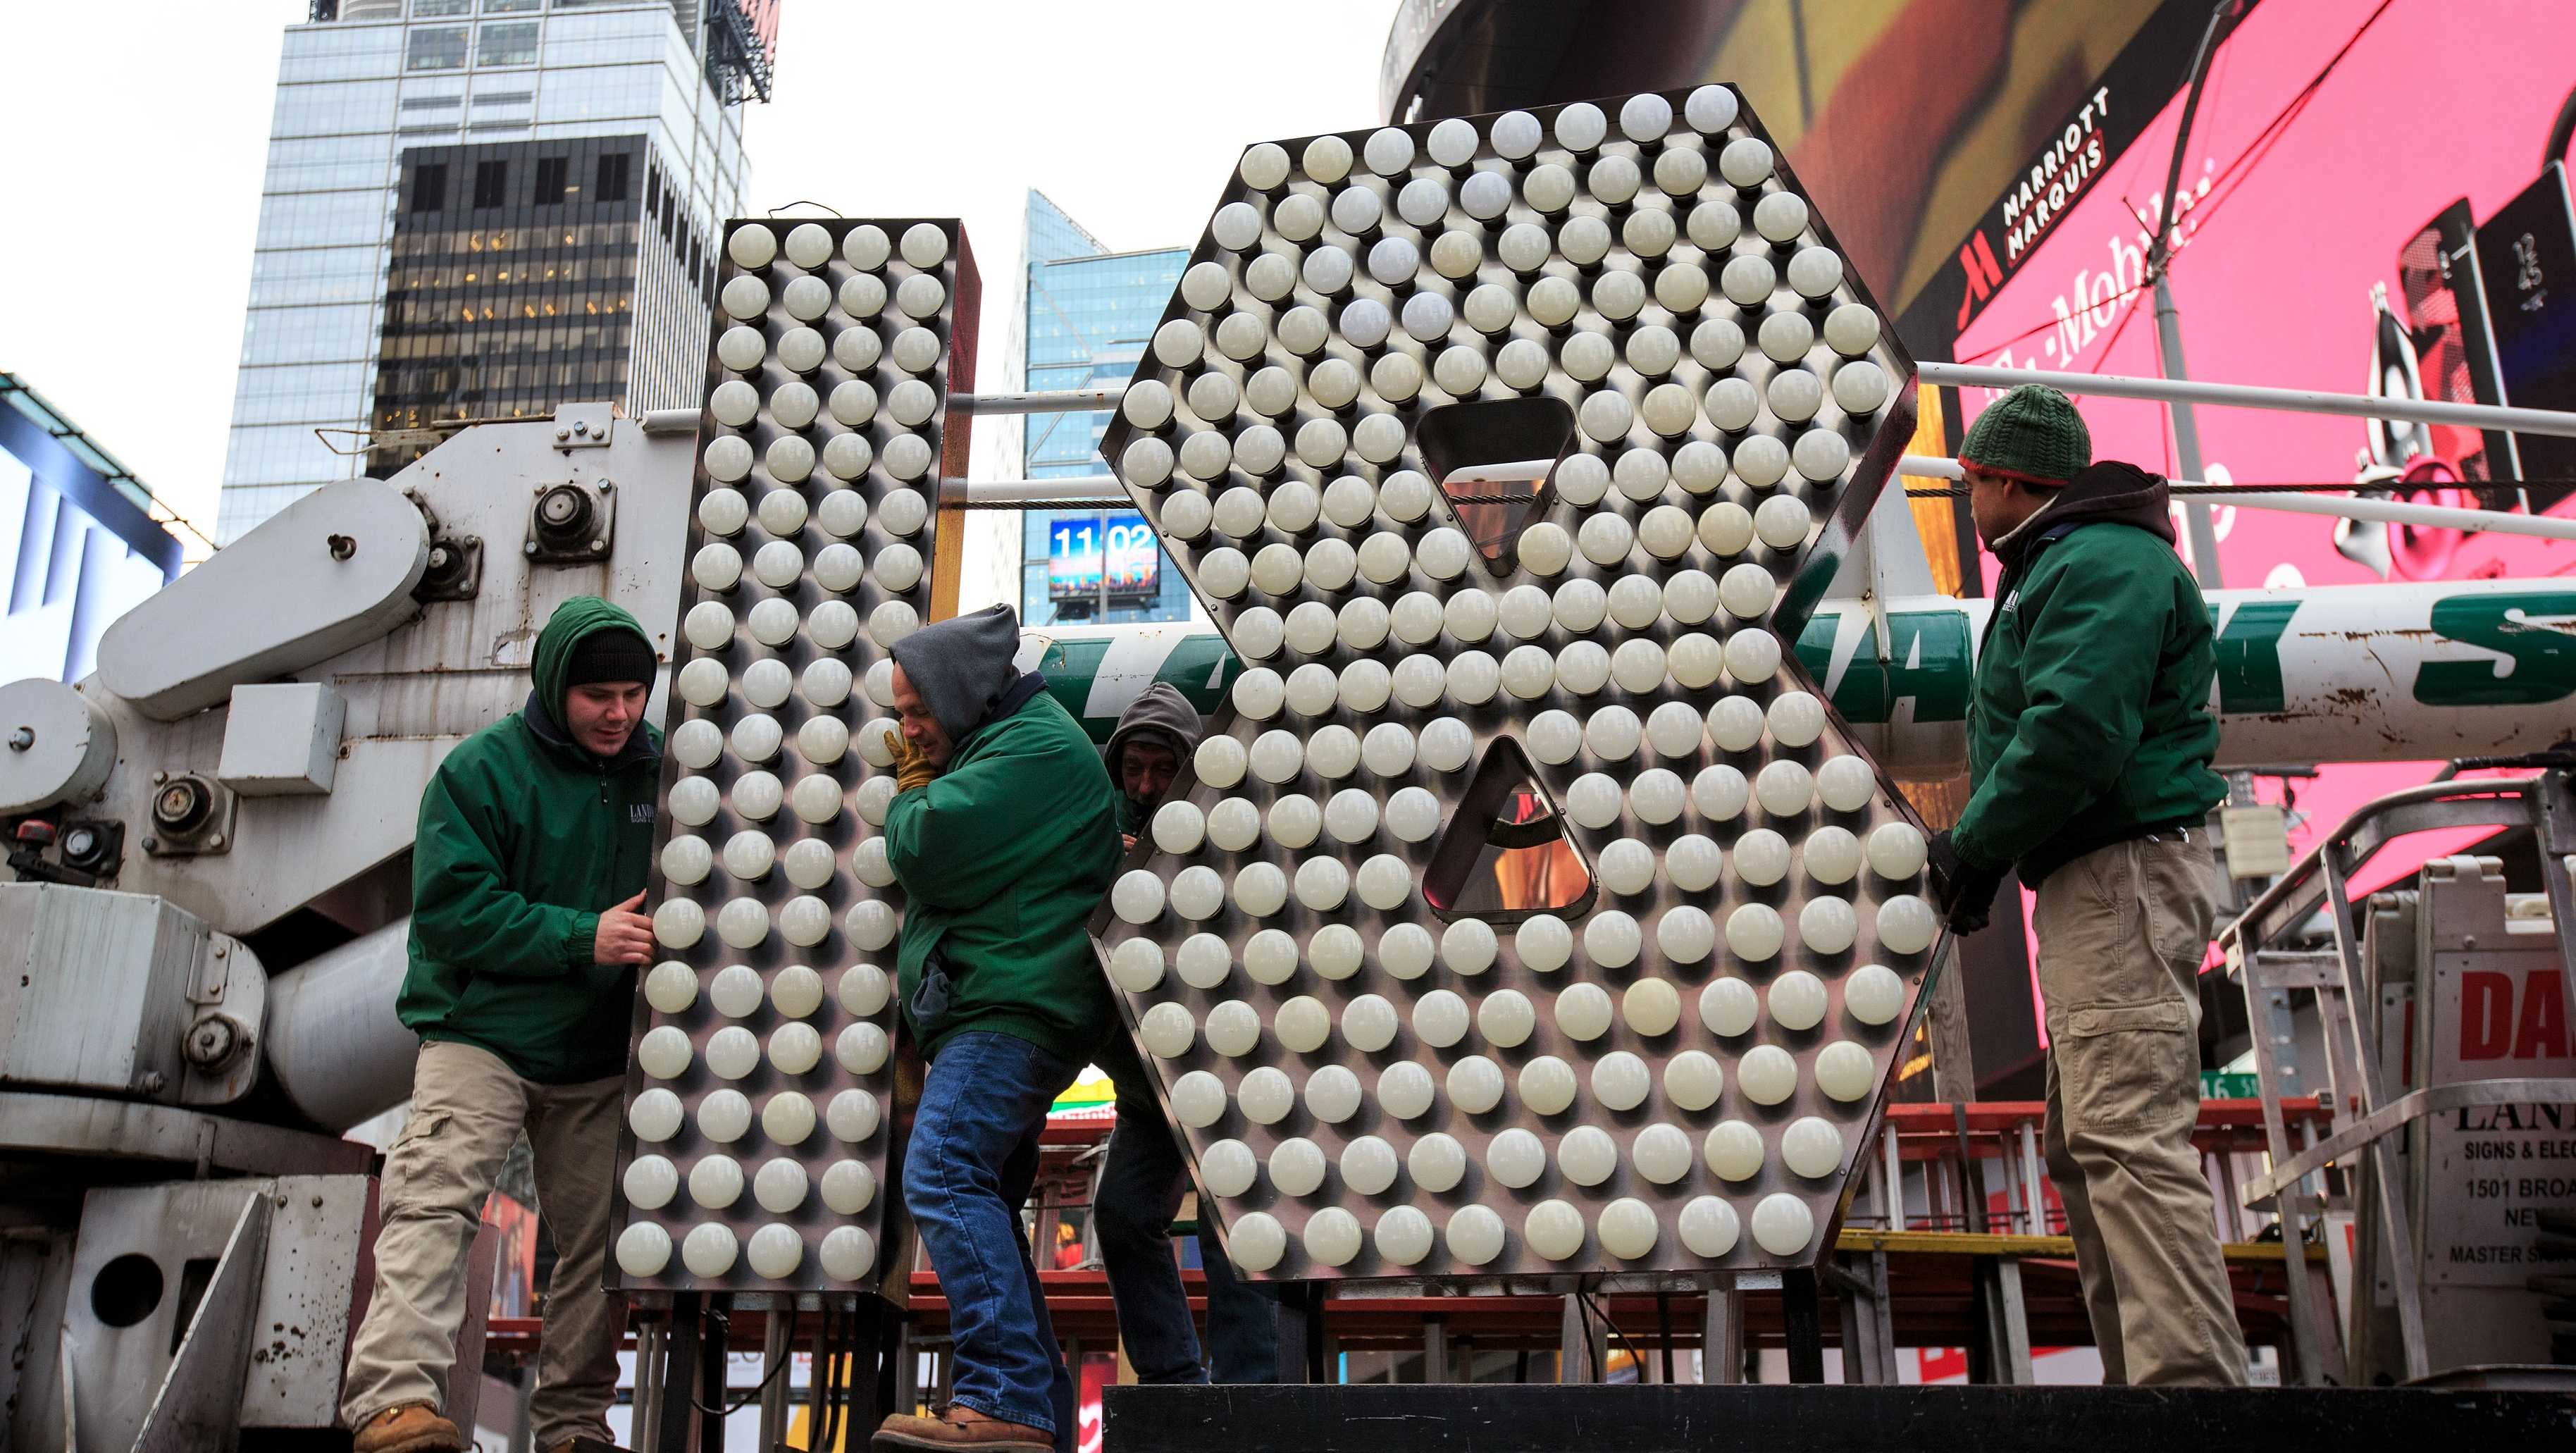 Workers unload the numerals 1 and 8 as they arrive in Times Square ahead of the New Year's Eve celebration, December 13, 2017 in New York City. The '18' numerals will be part of the '2018' sign that will light up light up above Times Square at midnight on December 31 to ring in the new year.